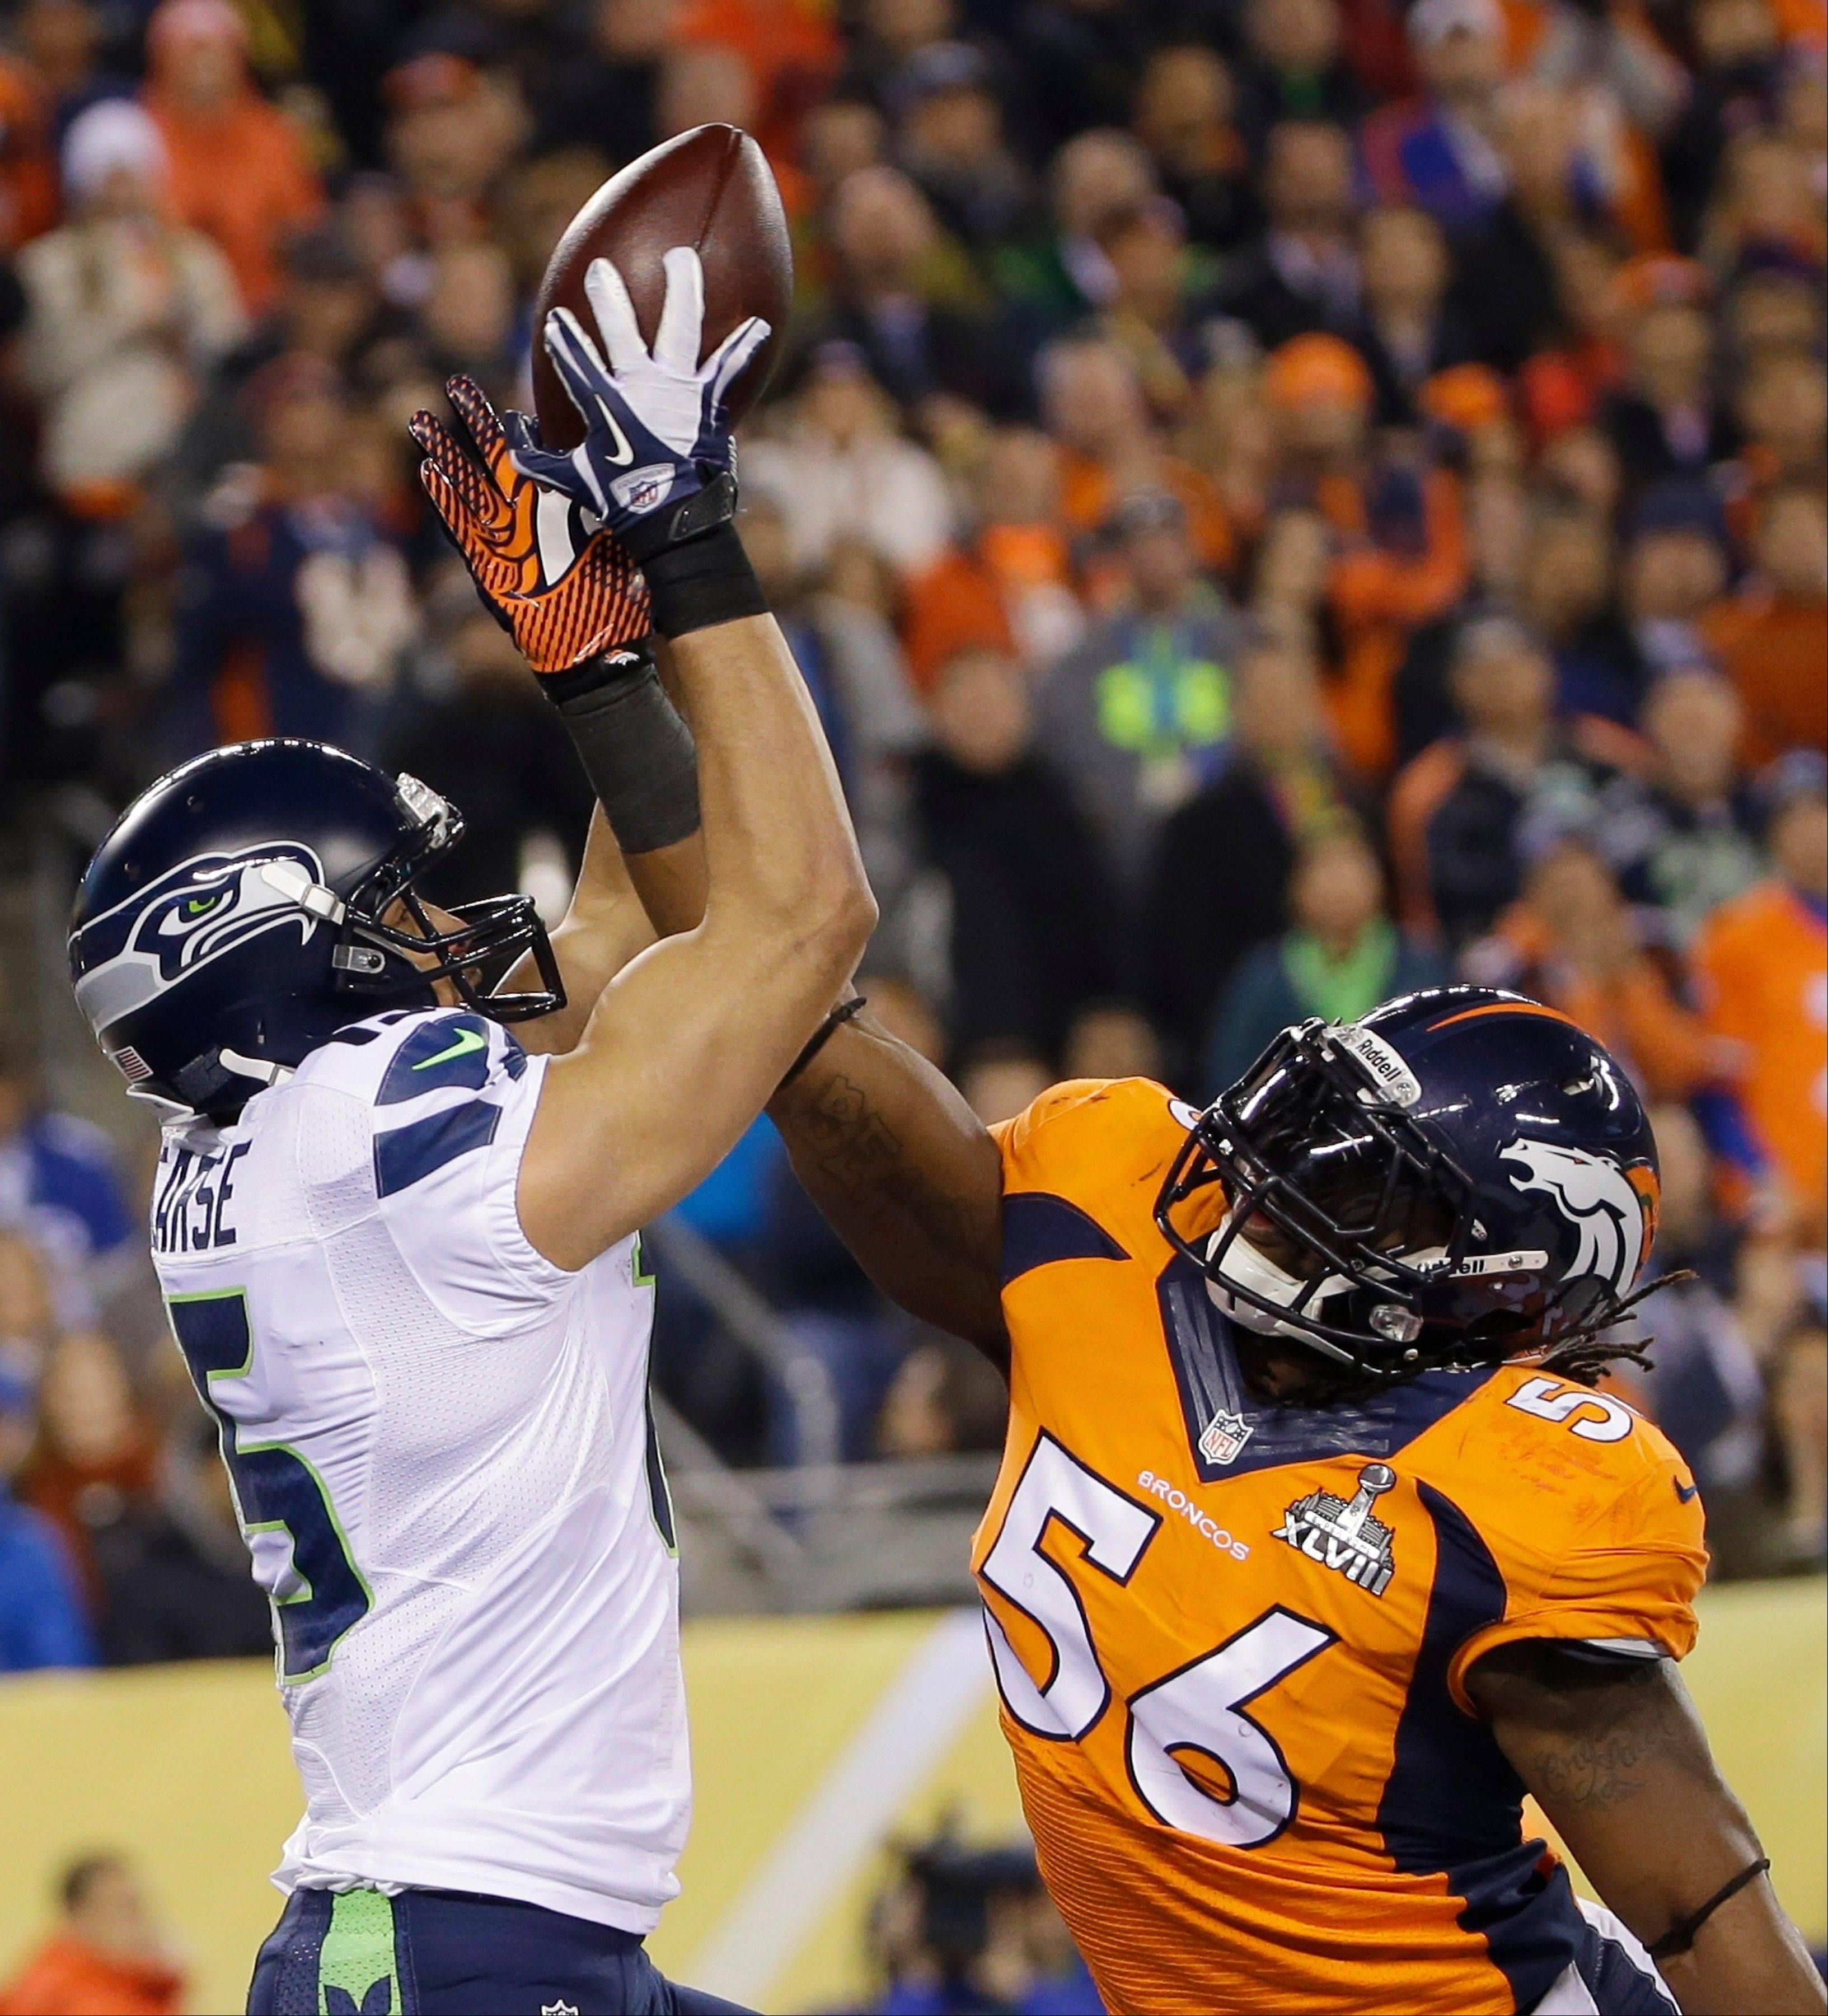 Denver Broncos' Nate Irving (56) breaks up a pass intended for Seattle Seahawks' Jermaine Kearse, left, during the first half.